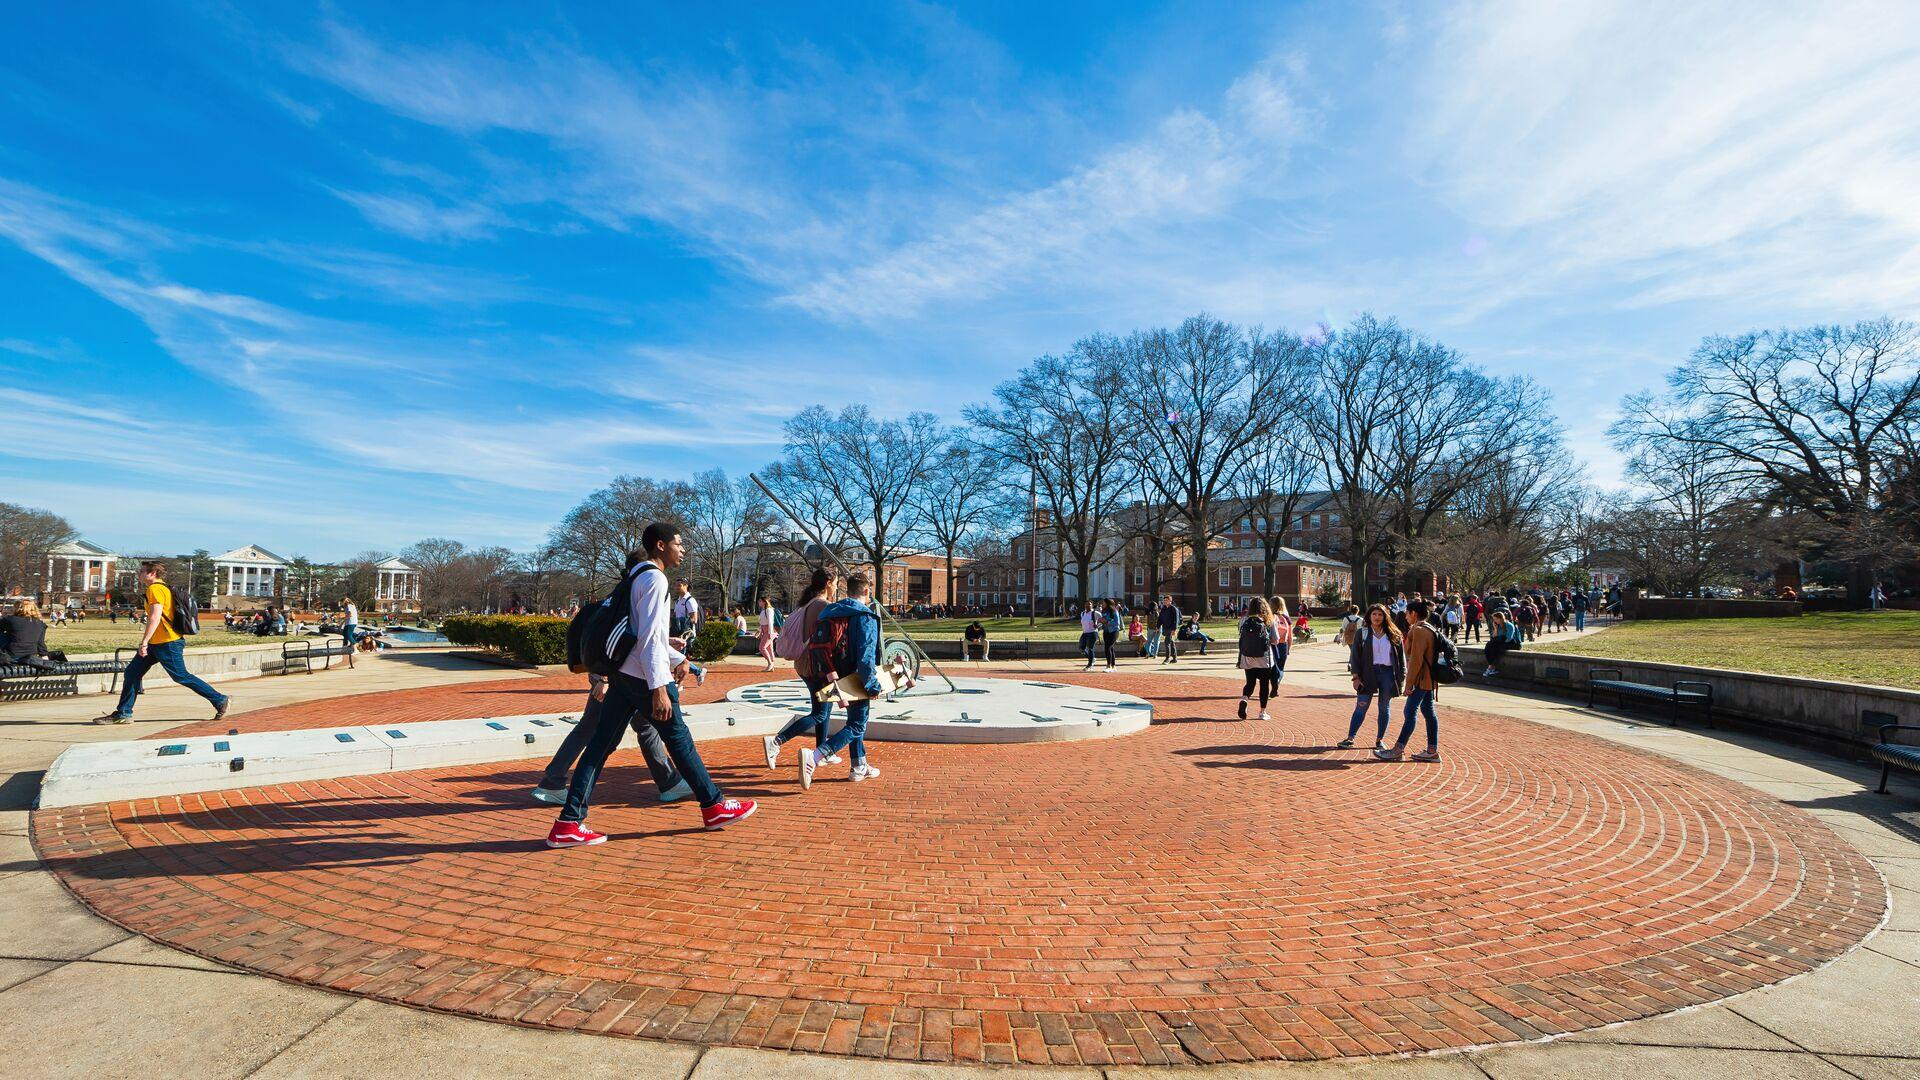 A view of the Sundial on the Mall with student activity on an unseasonably warm winter day.